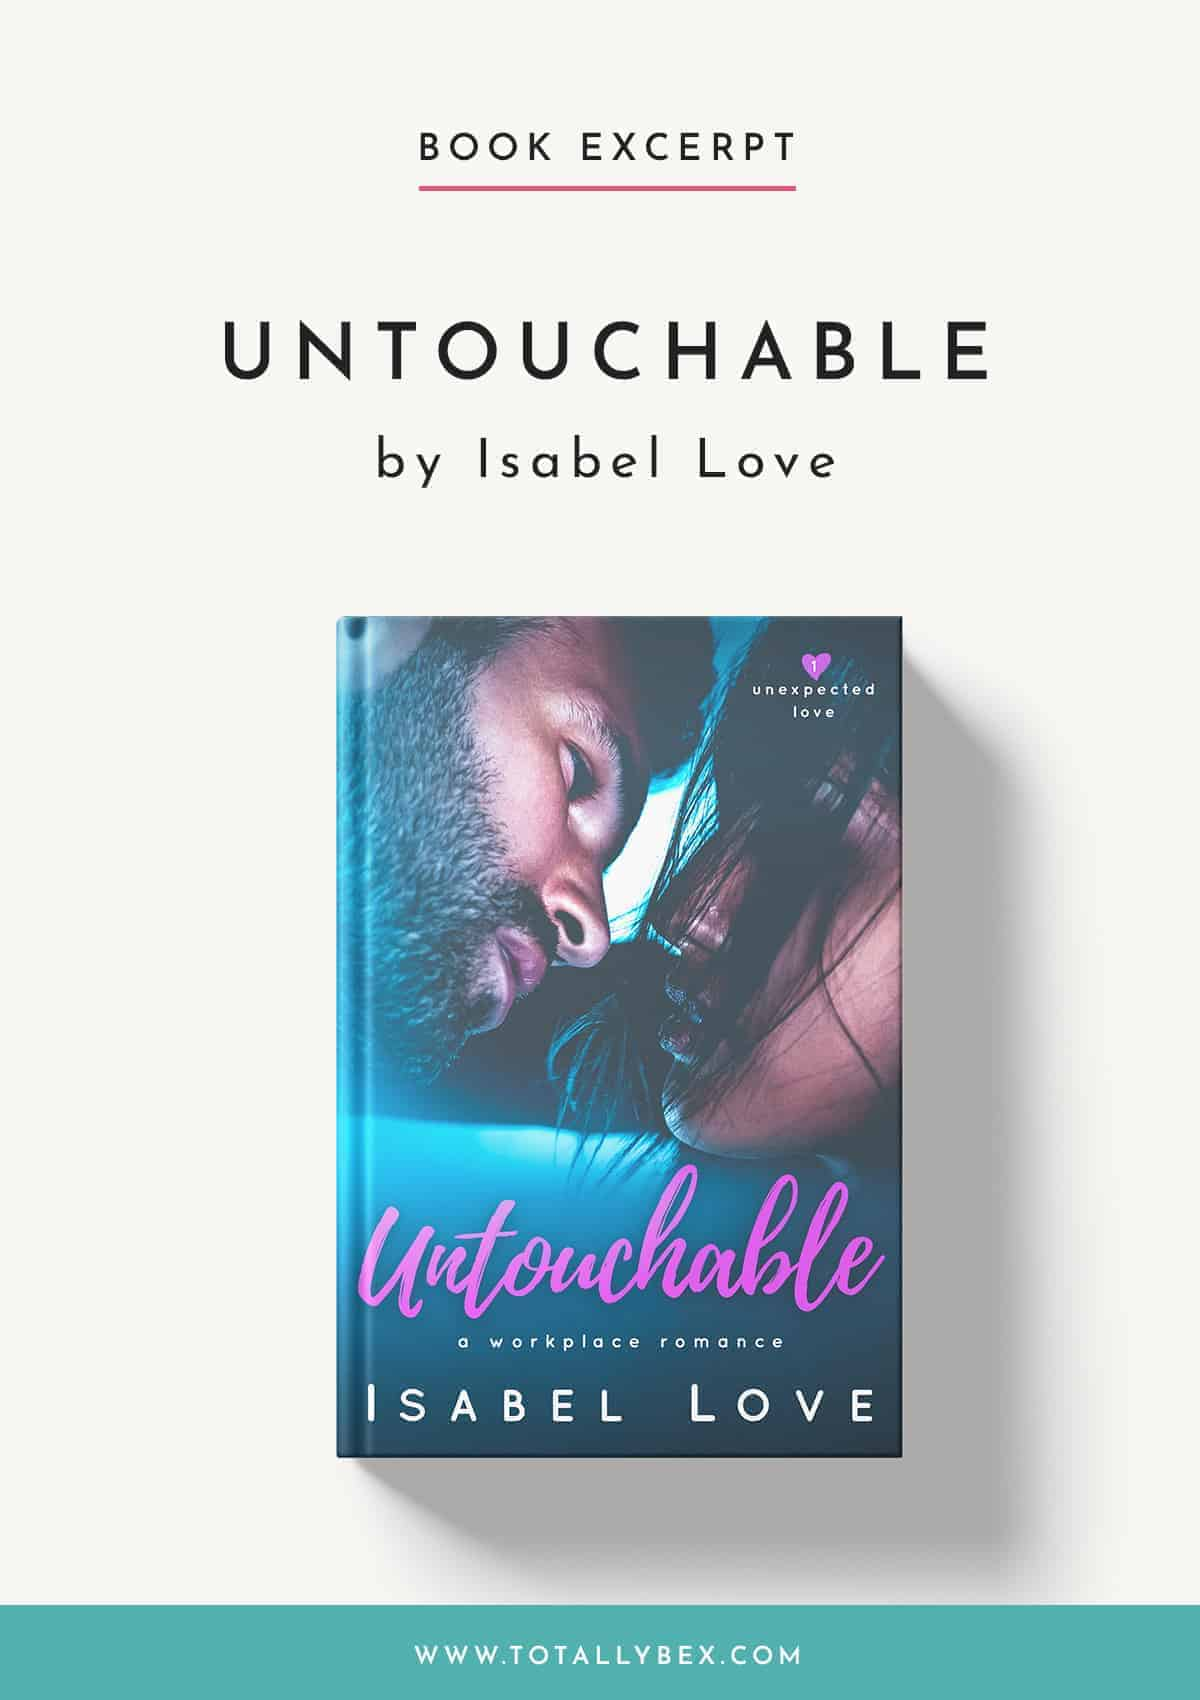 Untouchable by Isabel Love-Book Excerpt